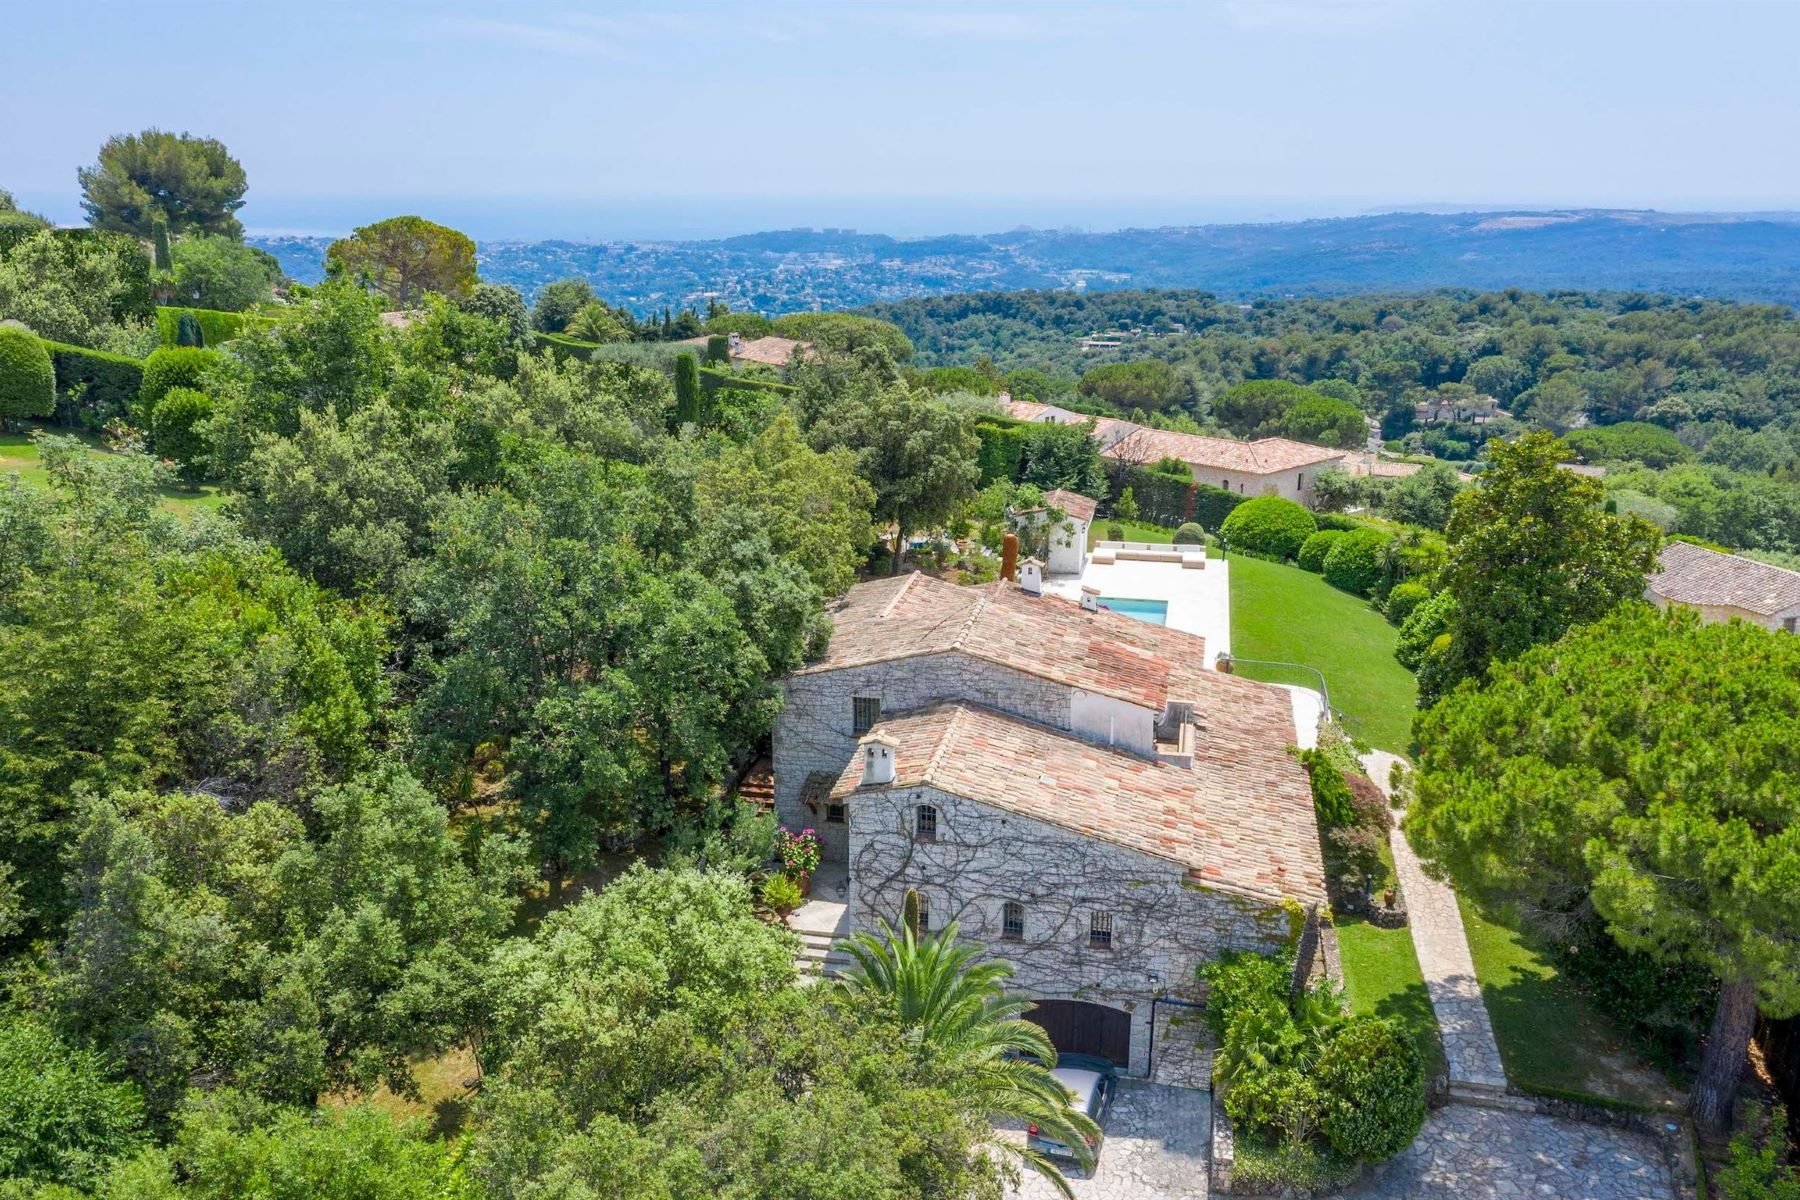 Single Family Homes por un Venta en Charming provencial style property in a private domain- sea views Other Provence-Alpes-Cote D'Azur, Provincia - Alpes - Costa Azul 06570 Francia